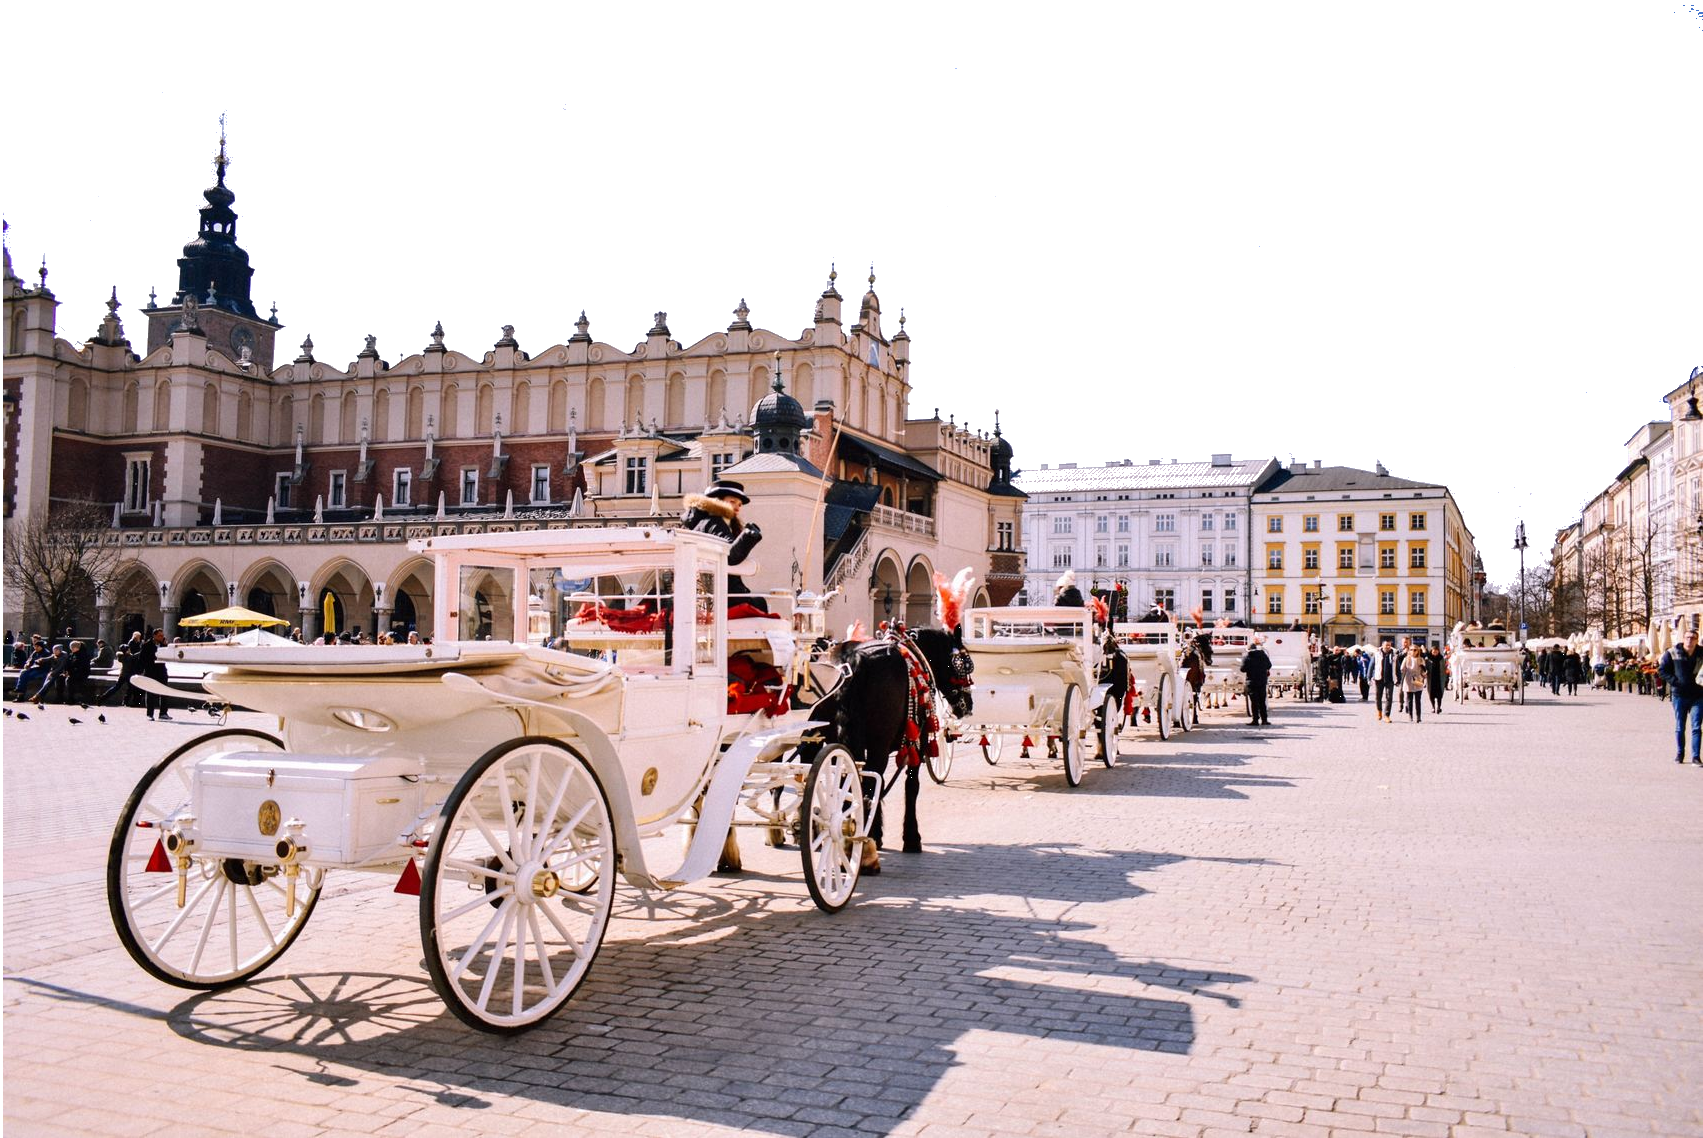 Krakow square with horses